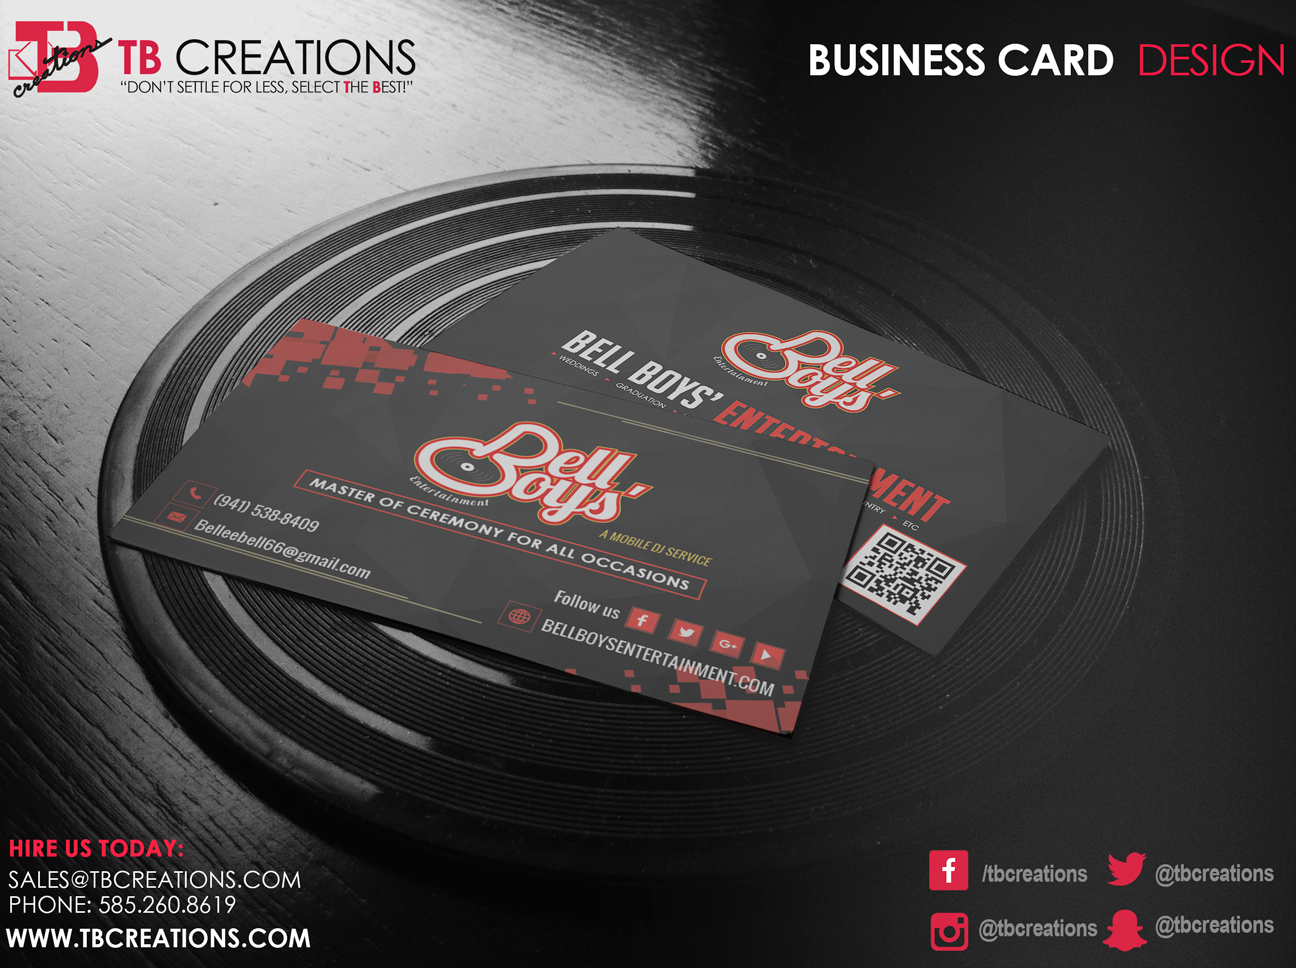 Business cards rochester ny best business 2017 bell boy s business card tb creations rochester ny reheart Choice Image